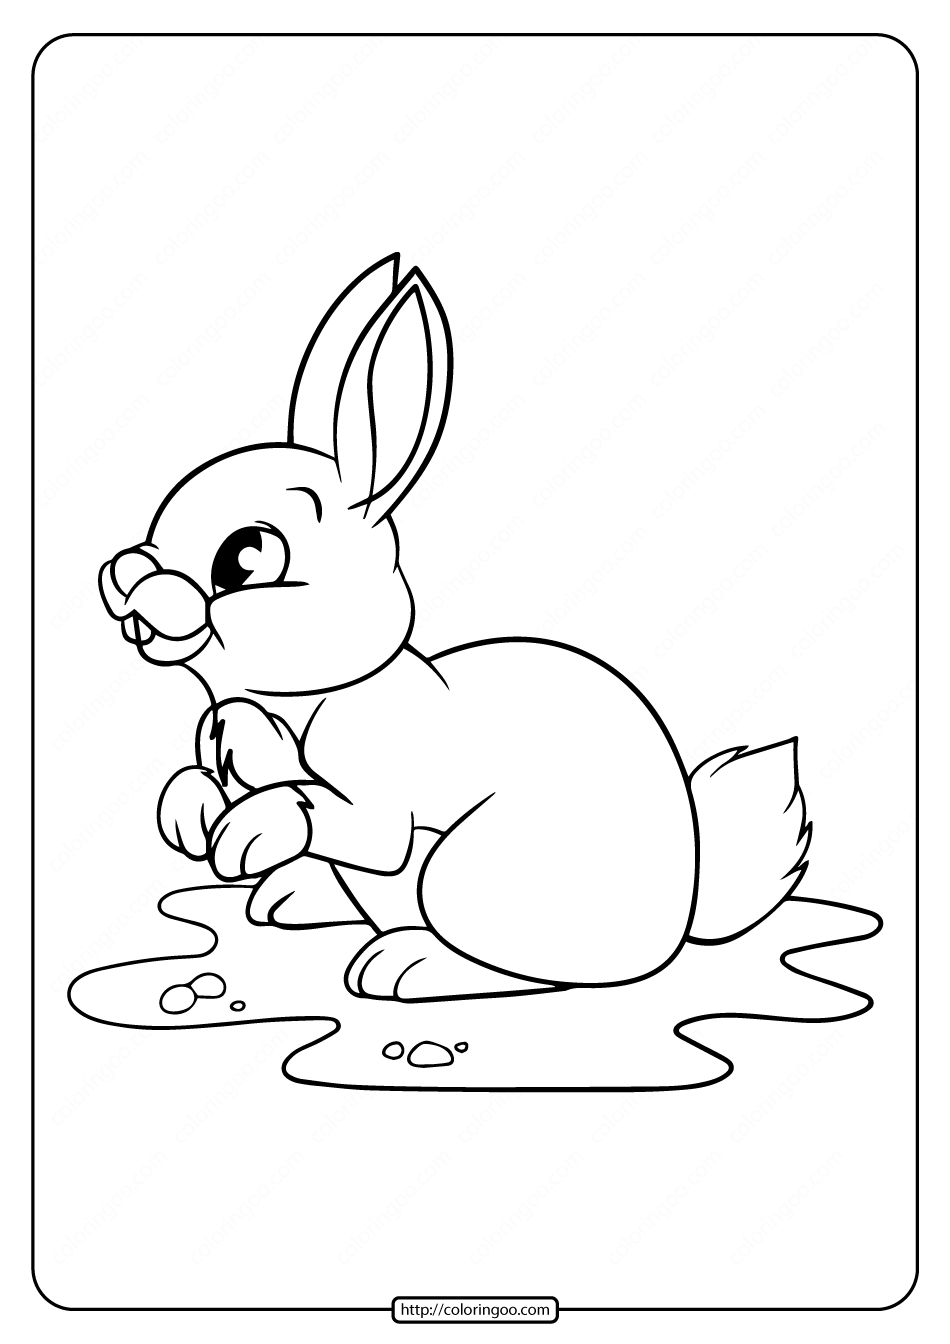 Free Printable Rabbit Pdf Coloring Pages